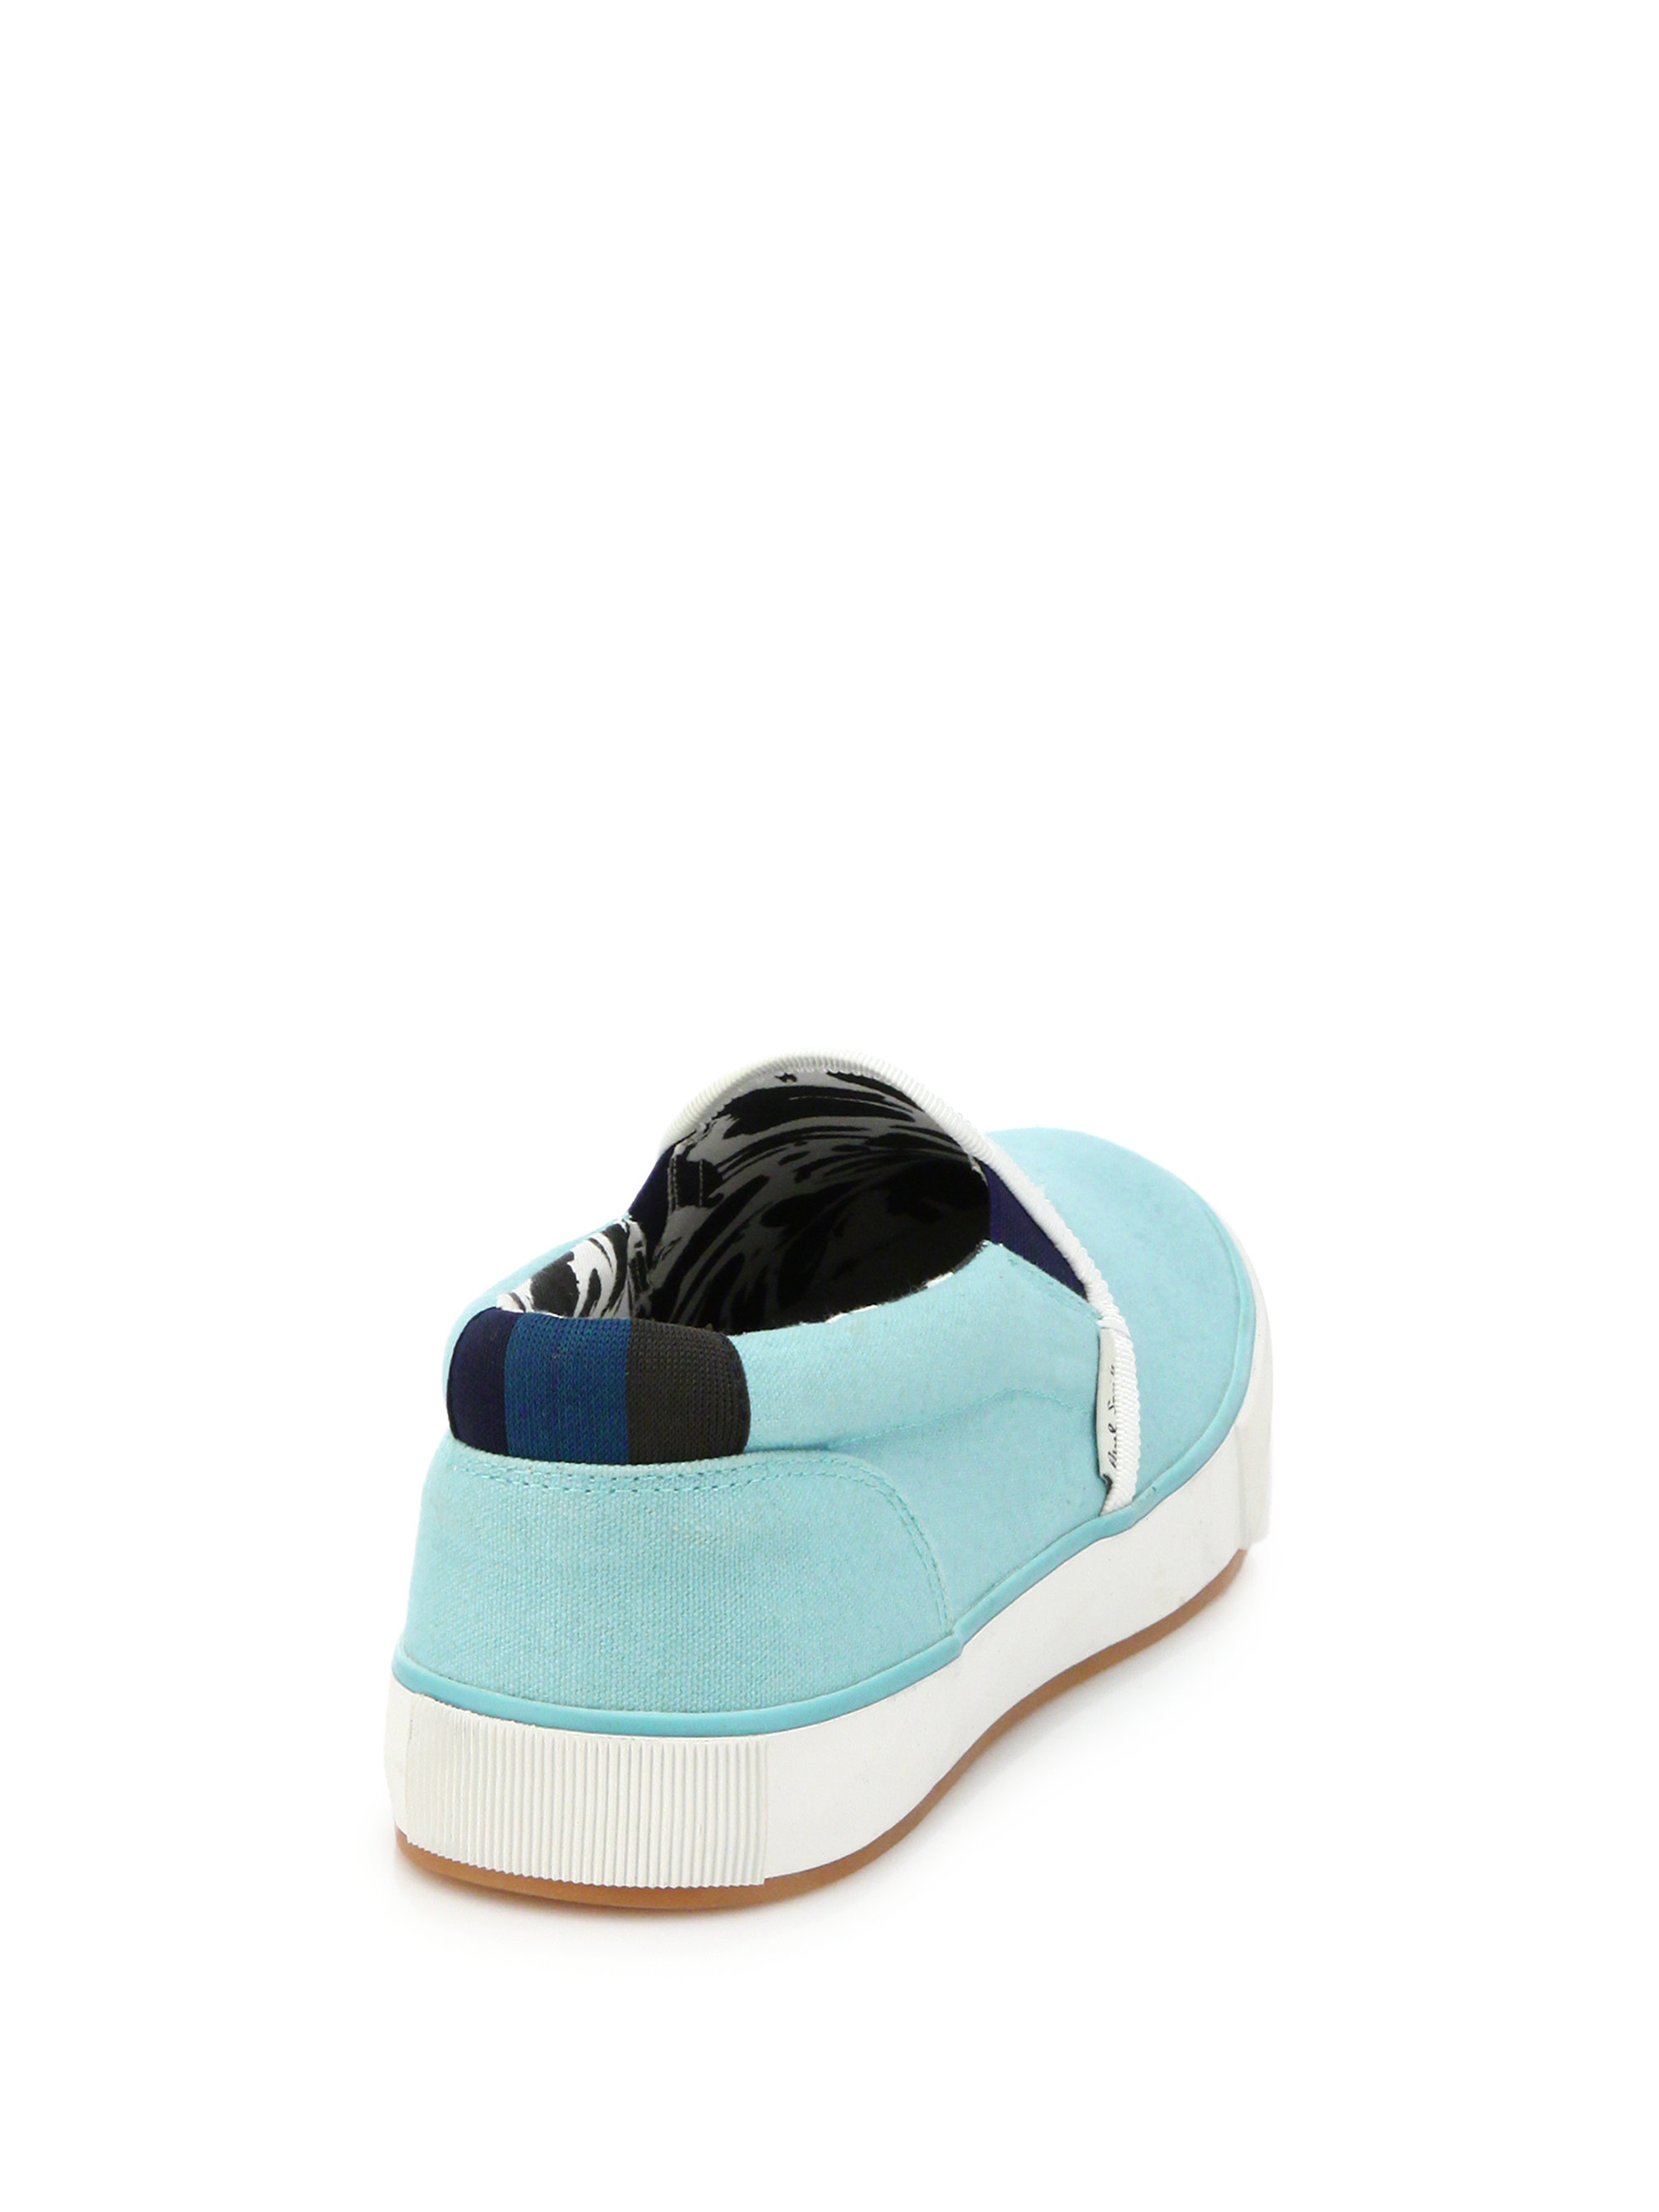 paul smith brontis canvas sneakers in blue lyst